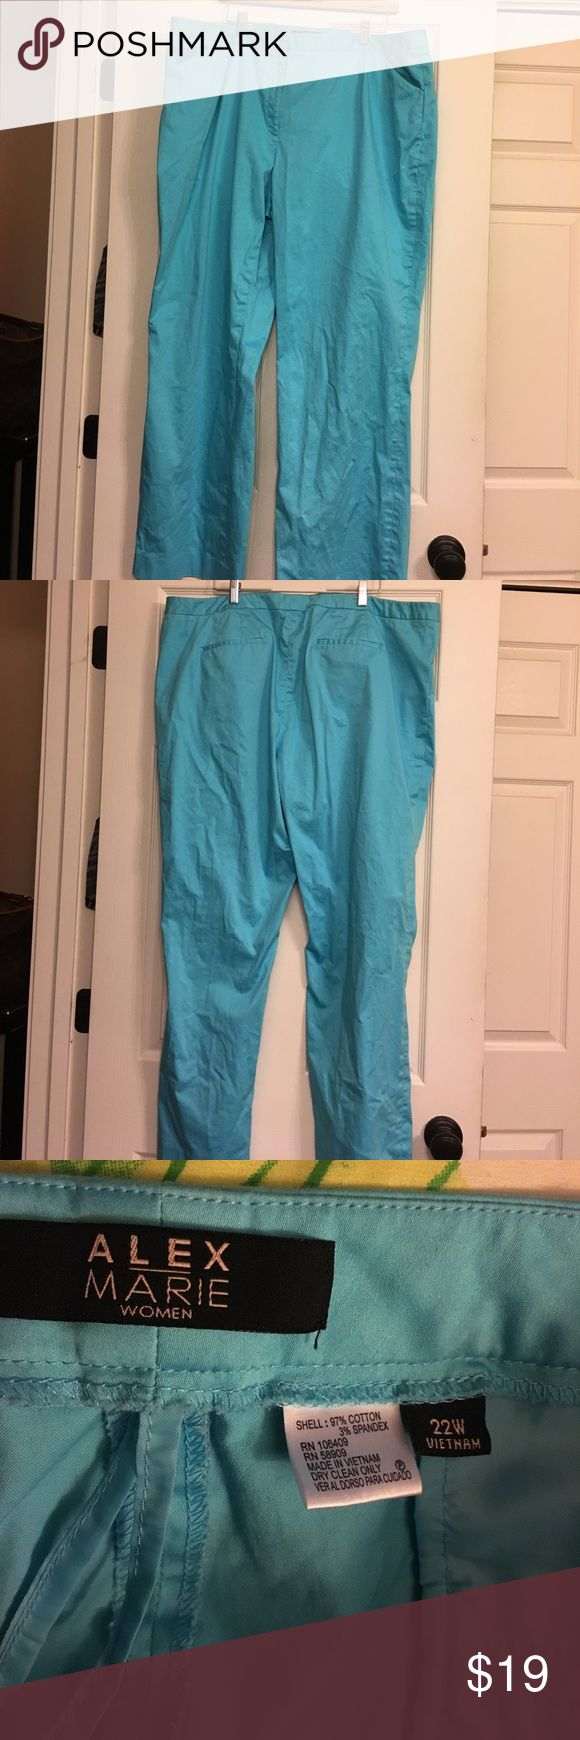 Alex Marie Pants!  Size 22W!  Great condition! Alex Marie Pants!  Size 22W!  Great condition! Priced to sale!  I can no longer wear them!  Feel free to make an offer! Alex Marie Pants Trousers